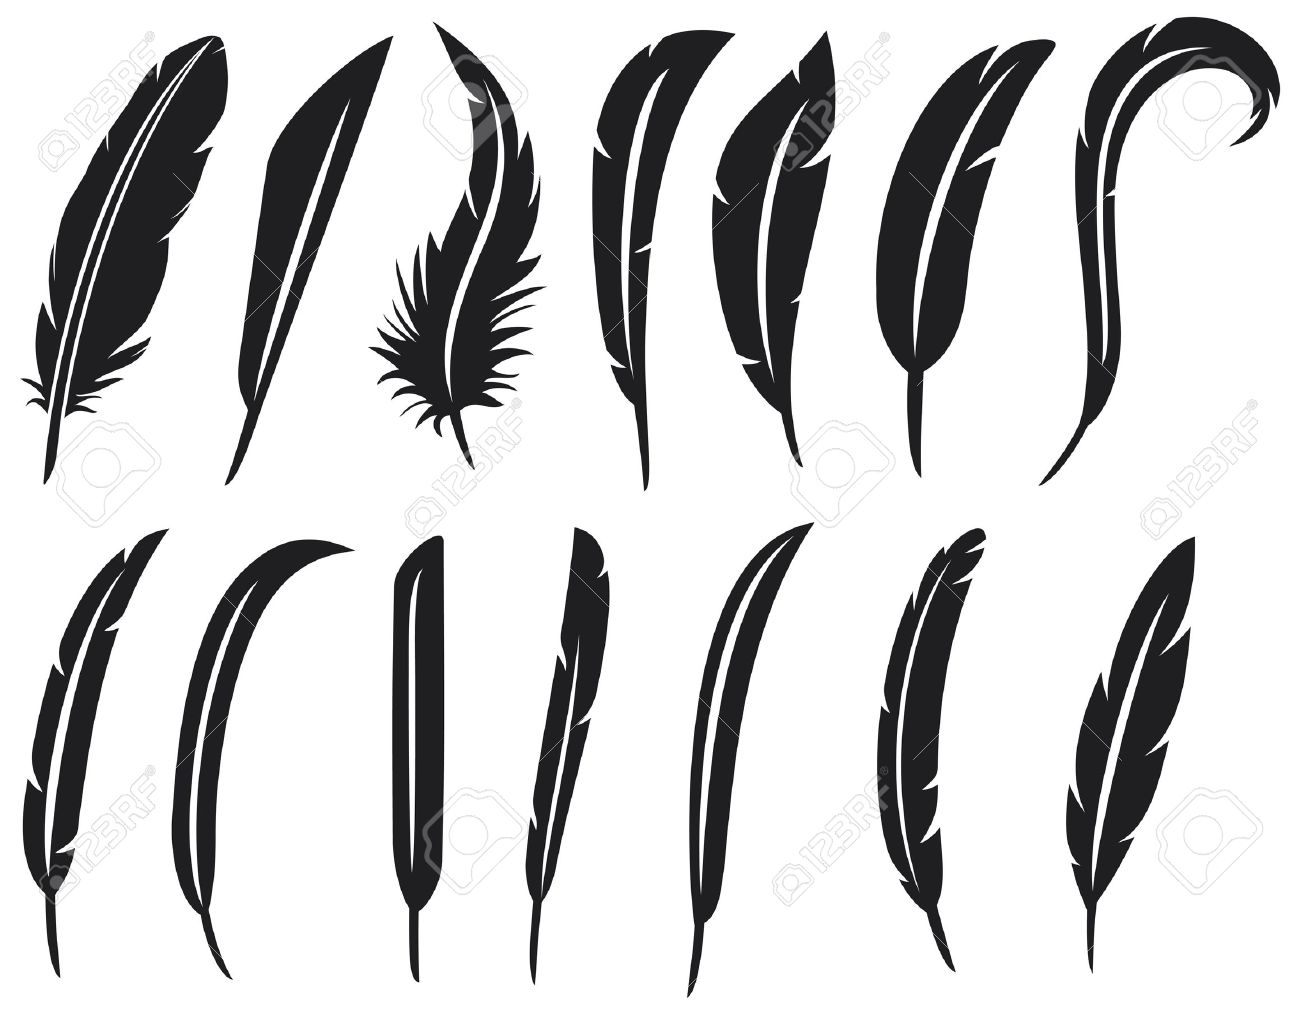 36 466 feather silhouette stock vector illustration and royalty